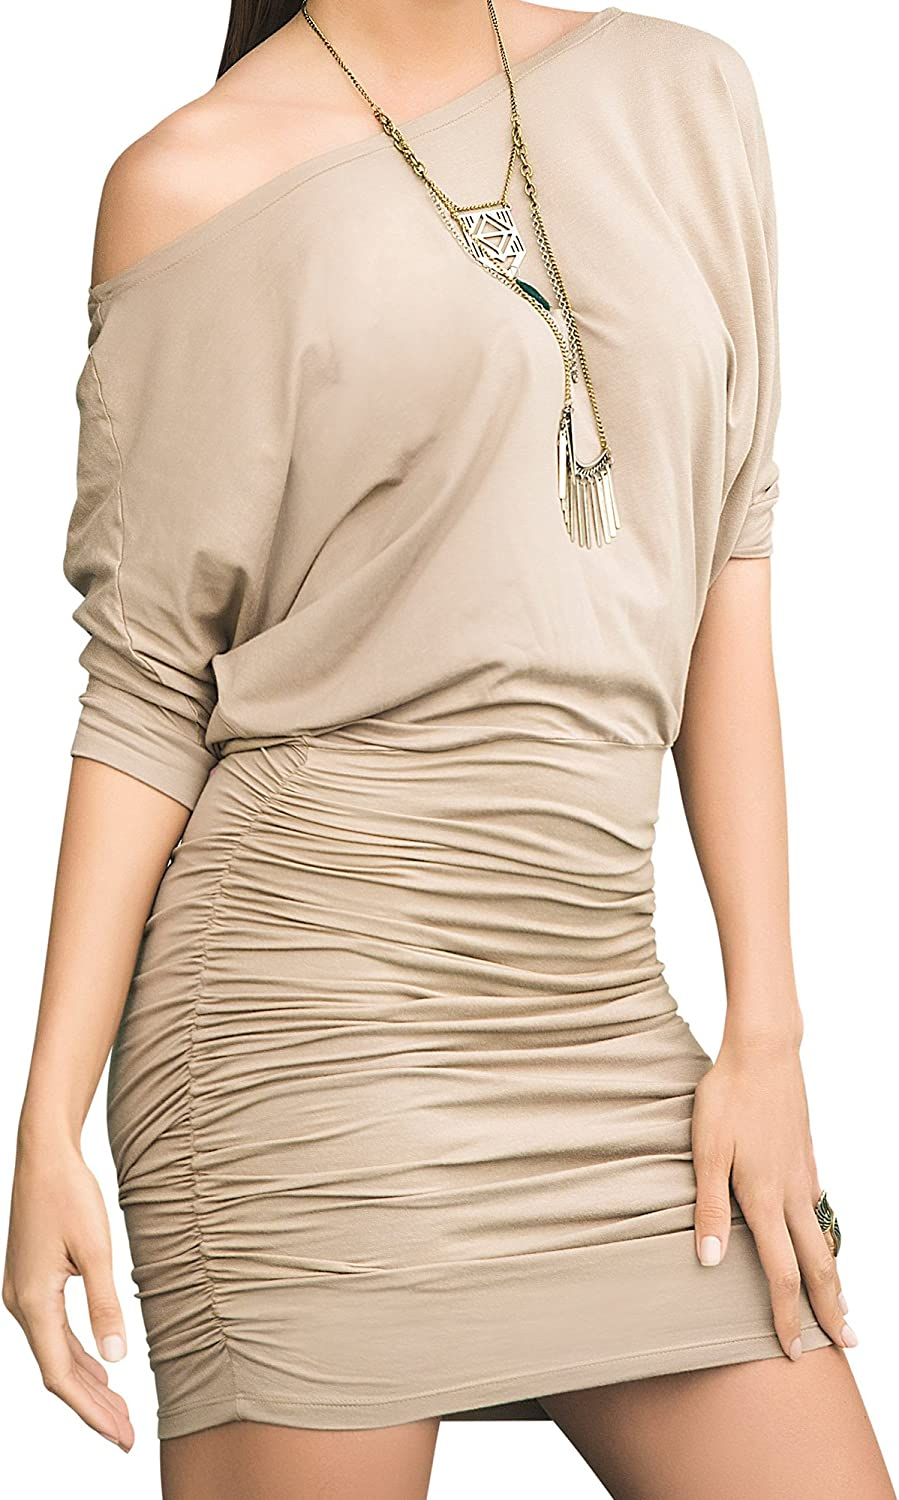 Mapalé by Espiral Women's Off The Max 84% OFF Short Sexy Min Virginia Beach Mall Sleeve Shoulder